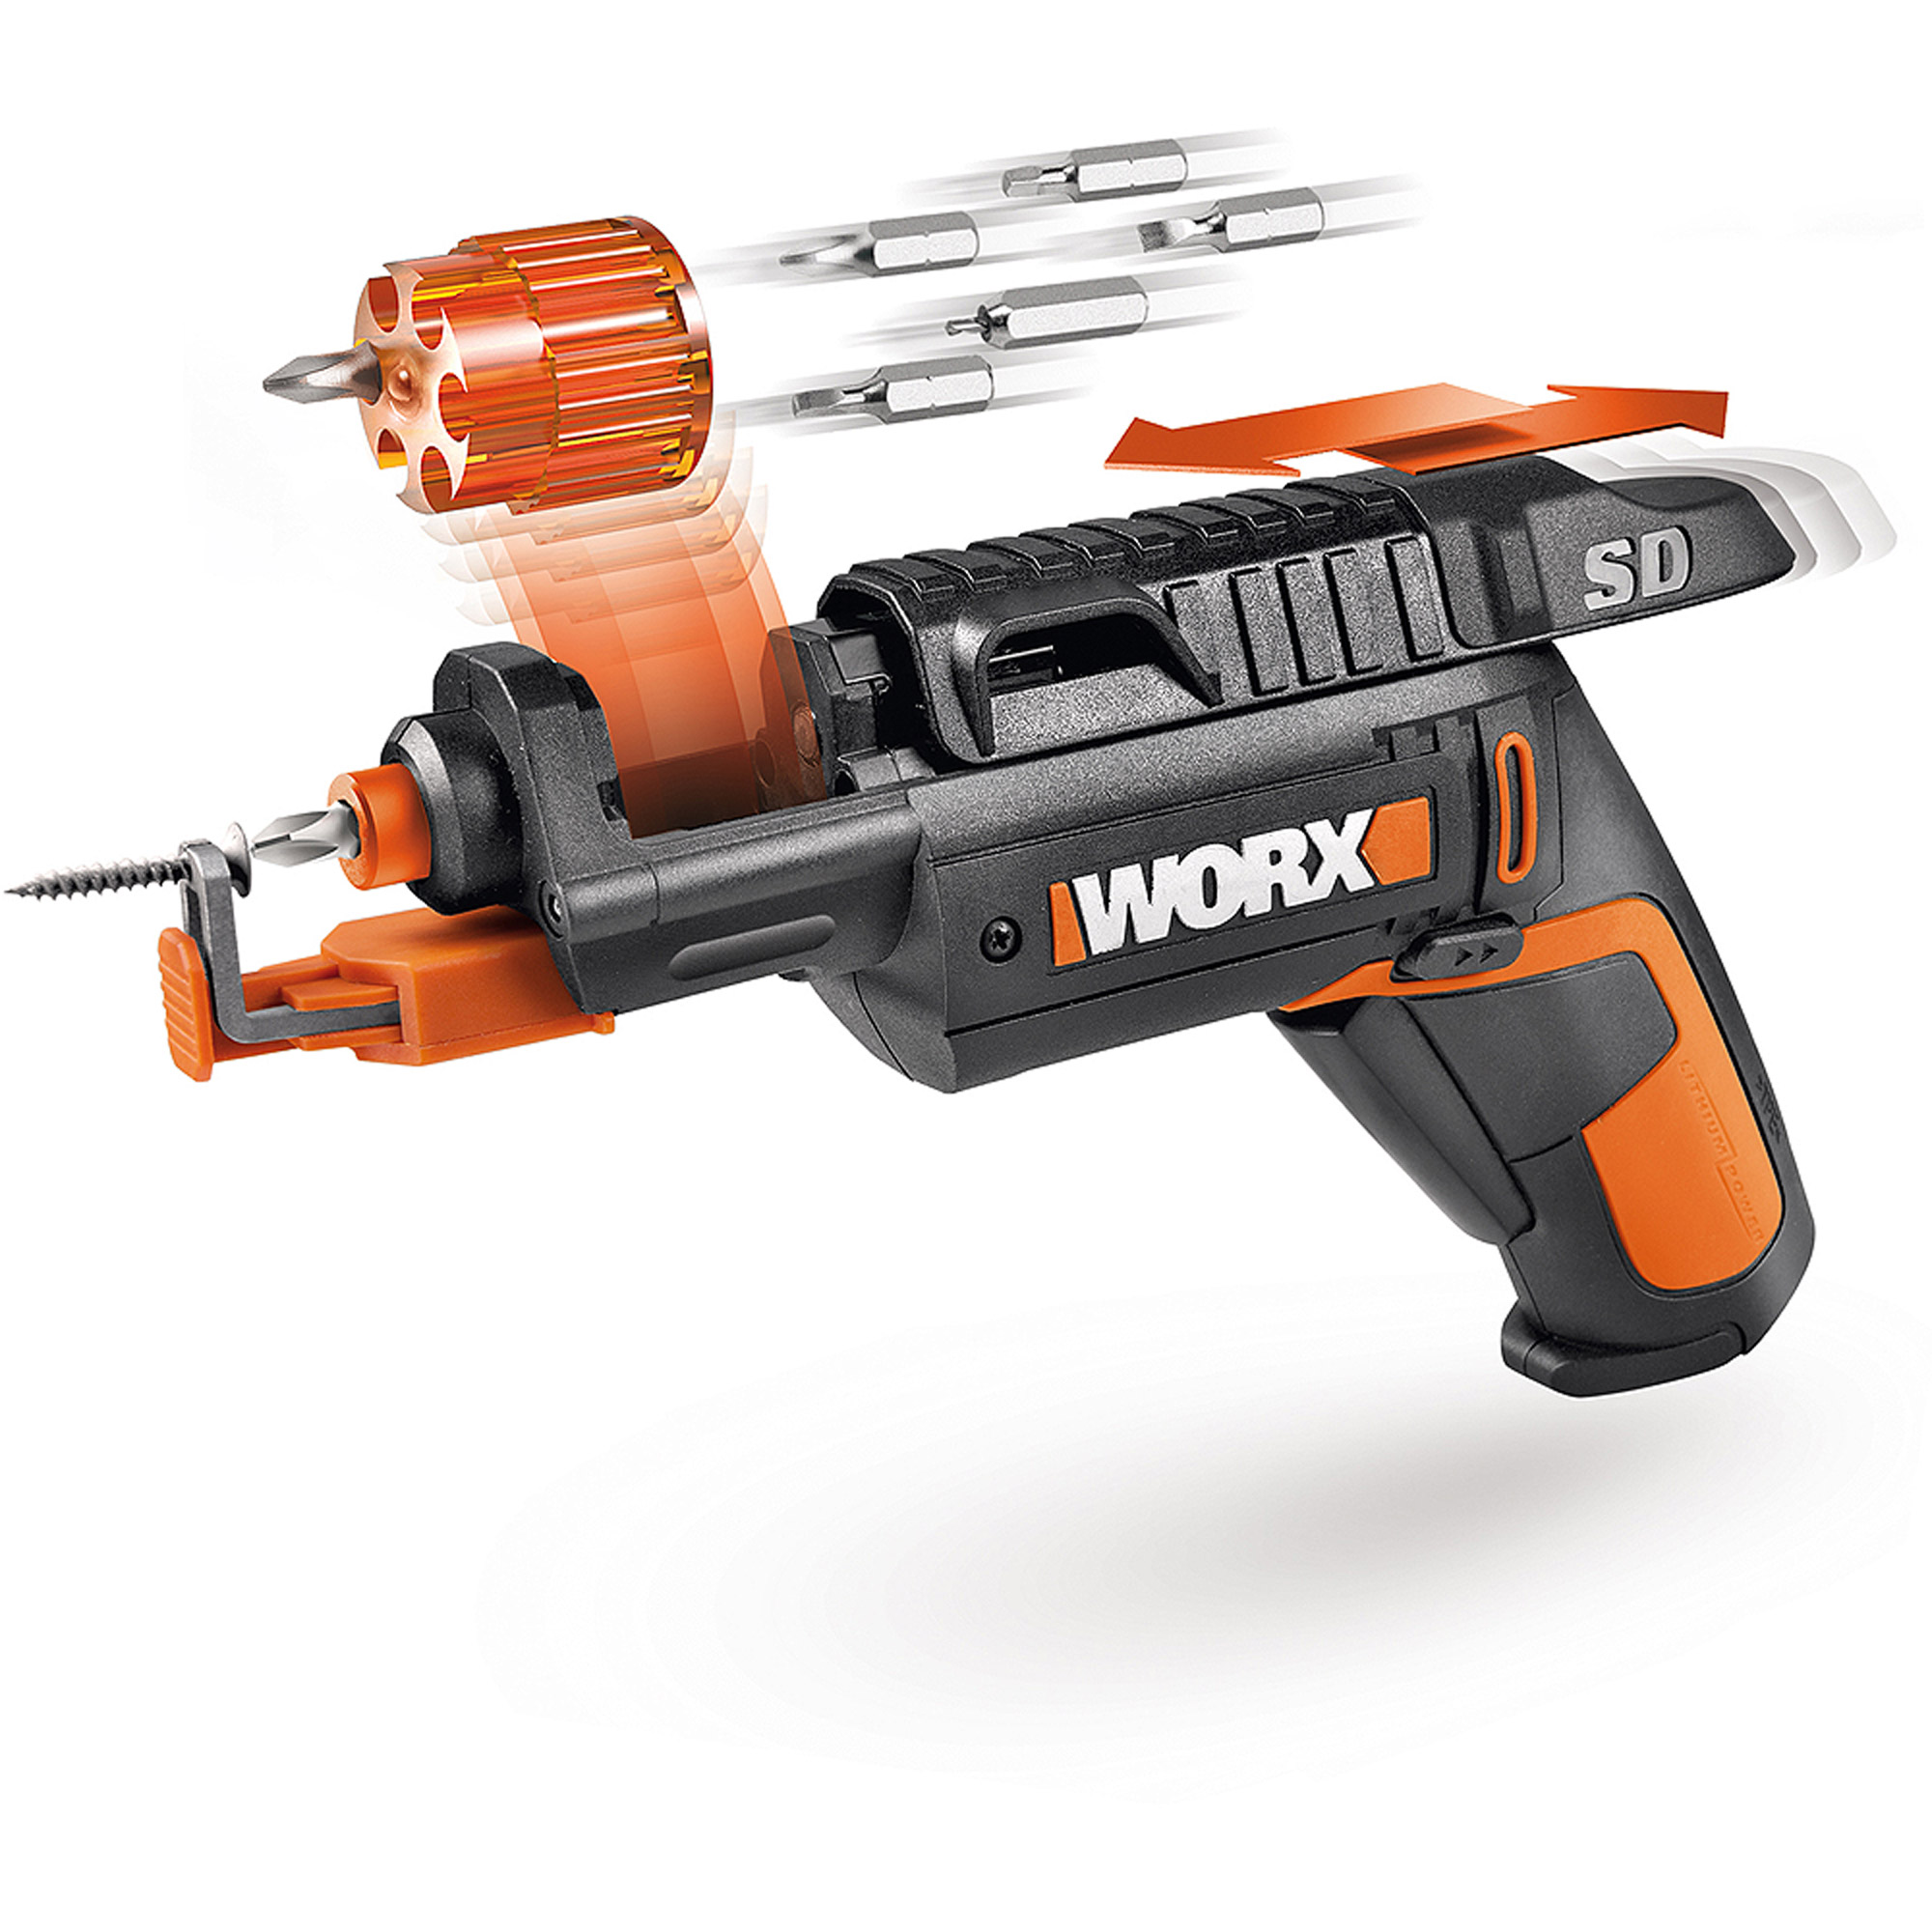 WORX Semi-Automatic Screw Driver with Screwholder Attachment